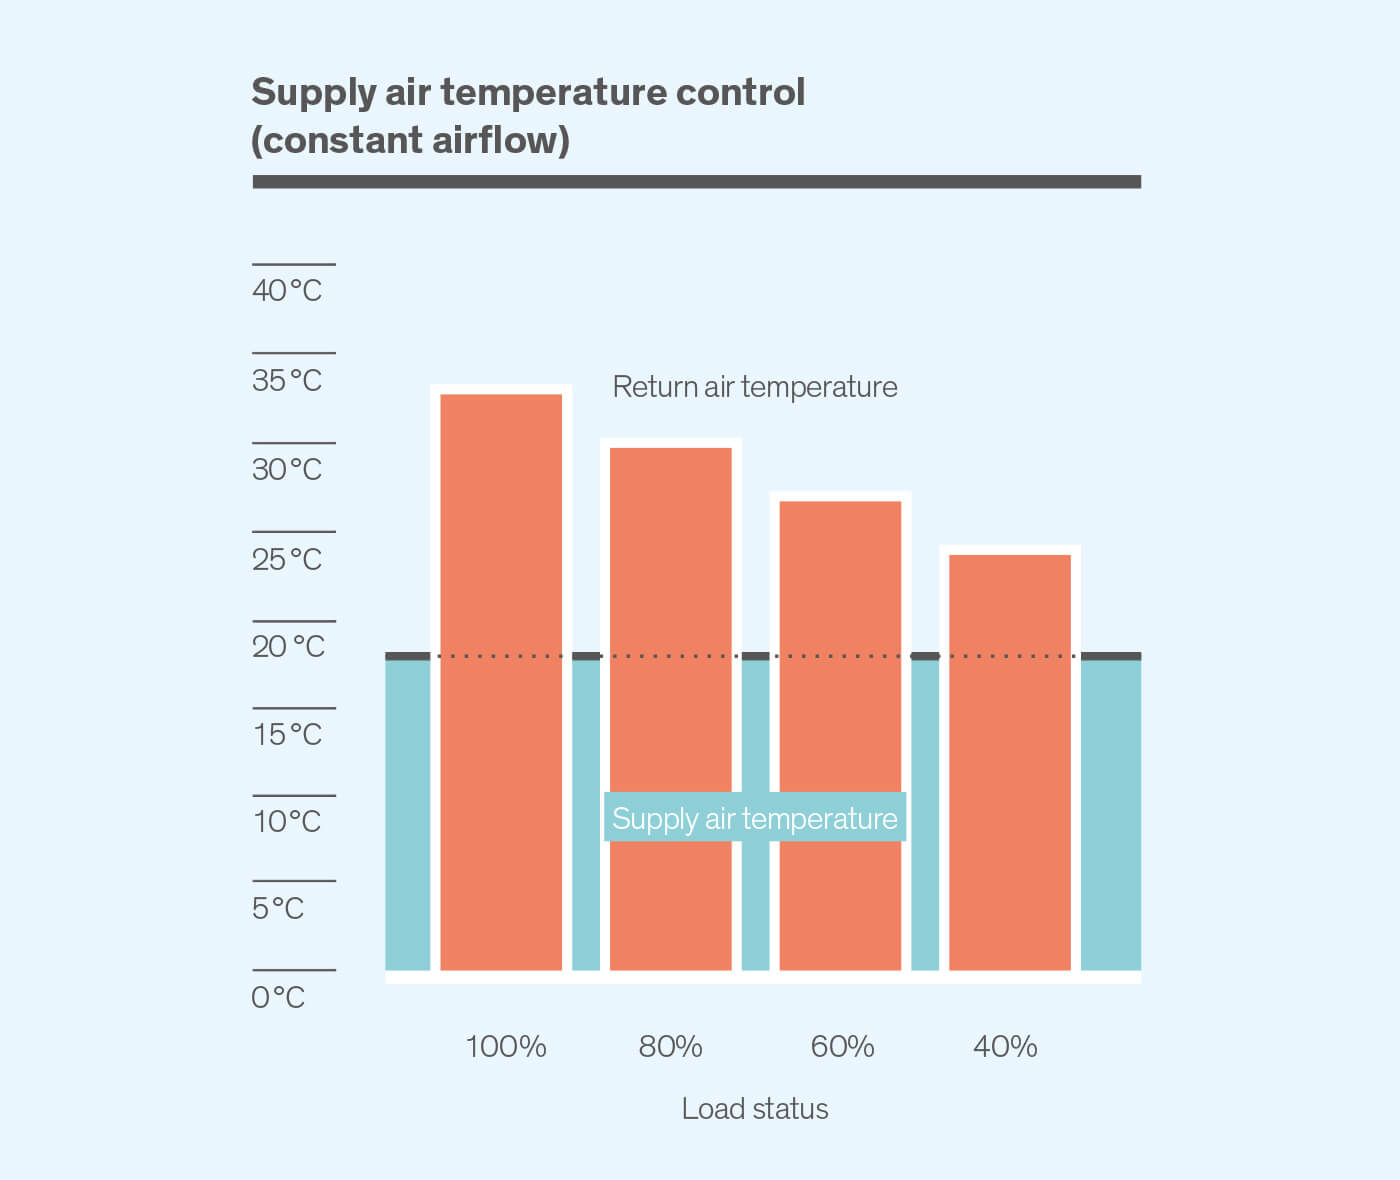 Supply air temperature control - Diagram